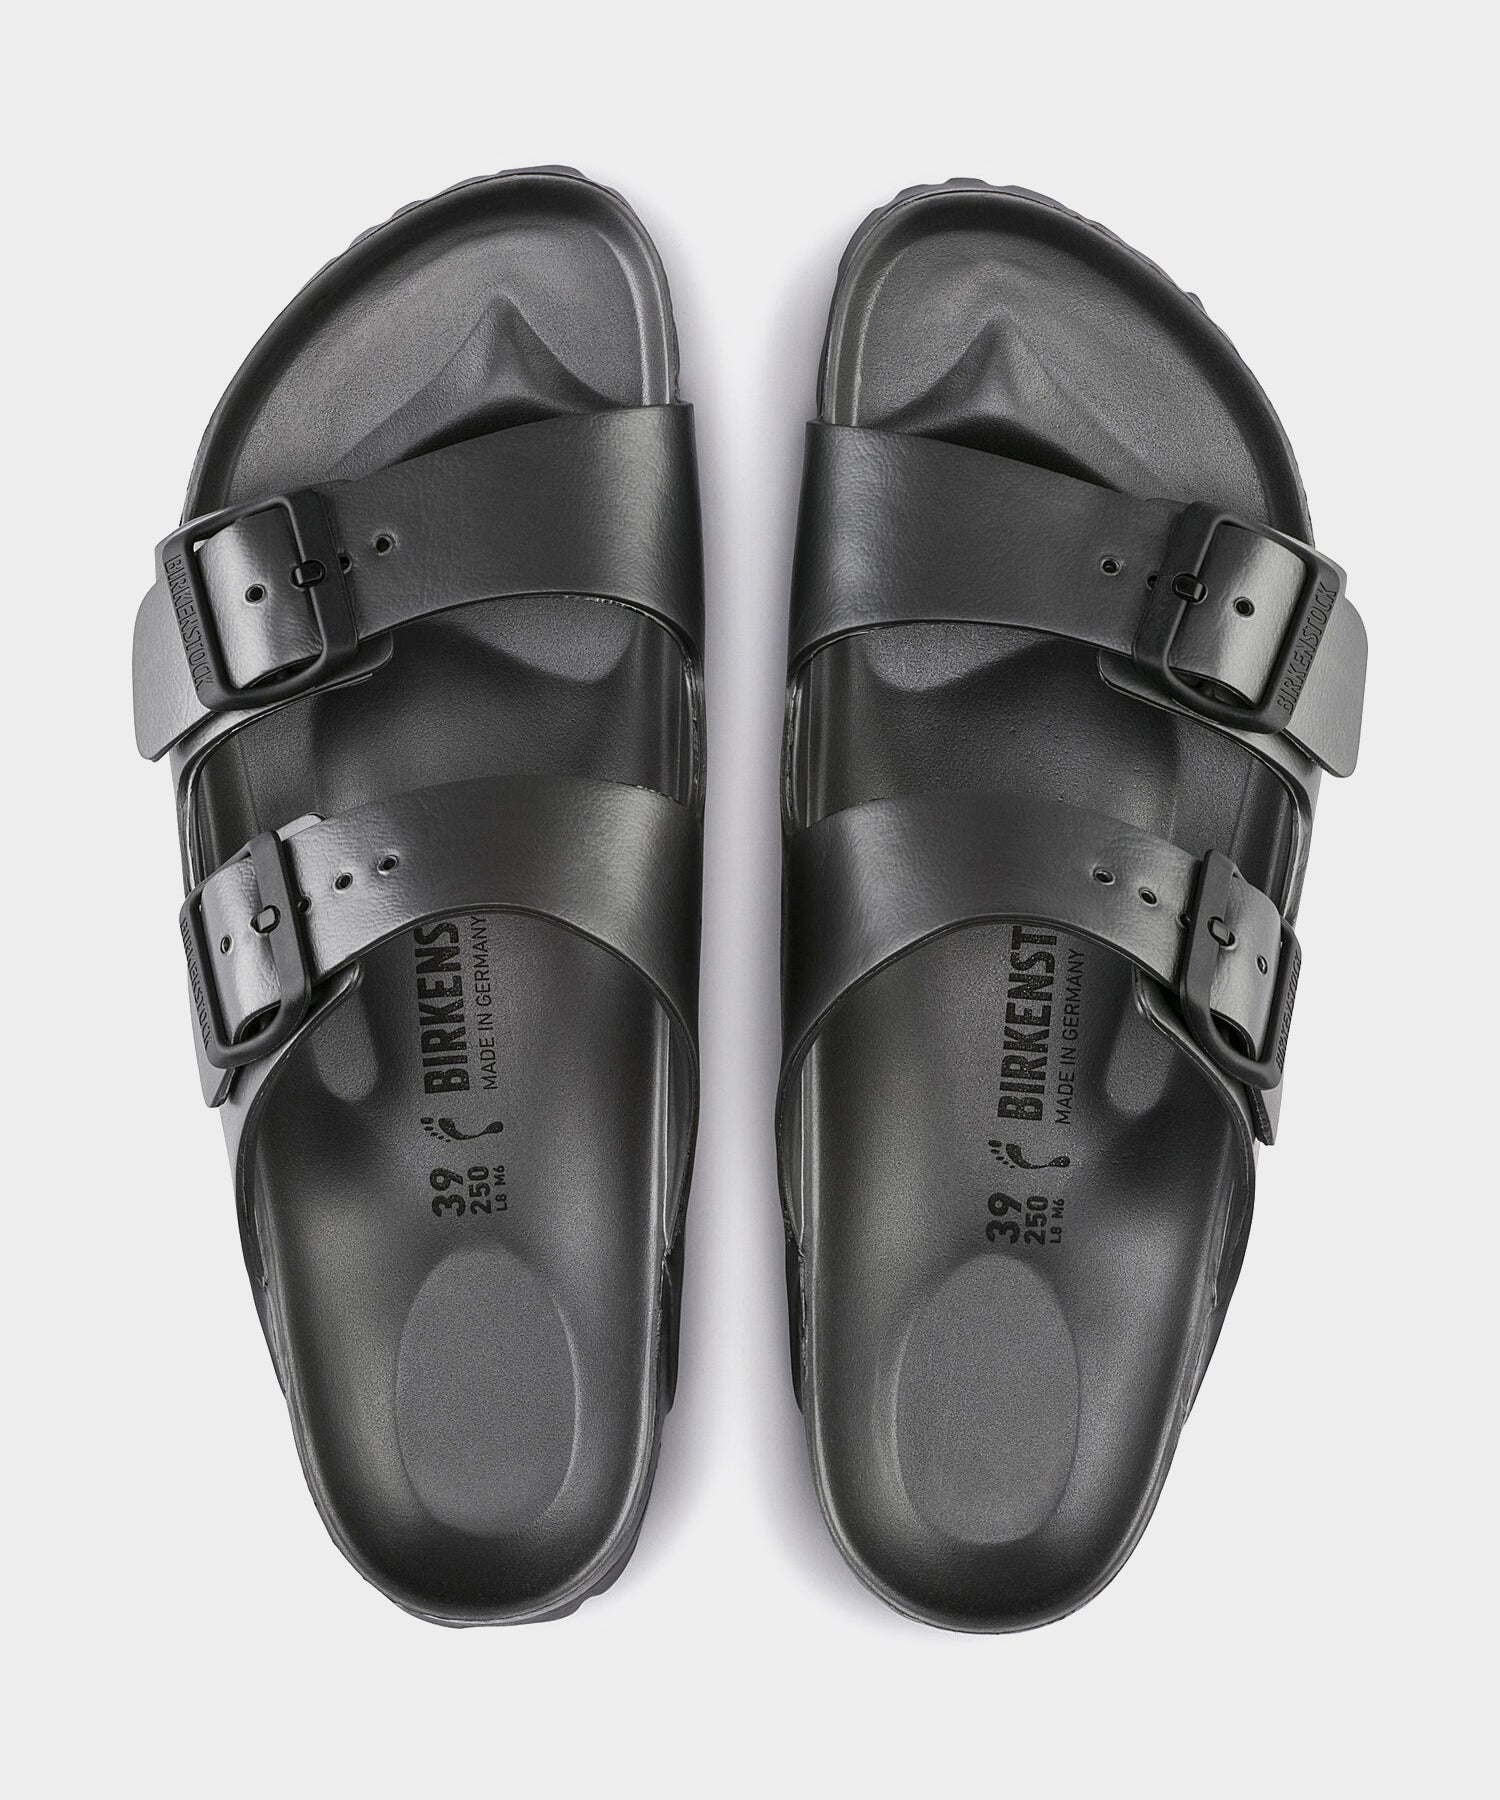 Birkenstock Arizona EVA in Black